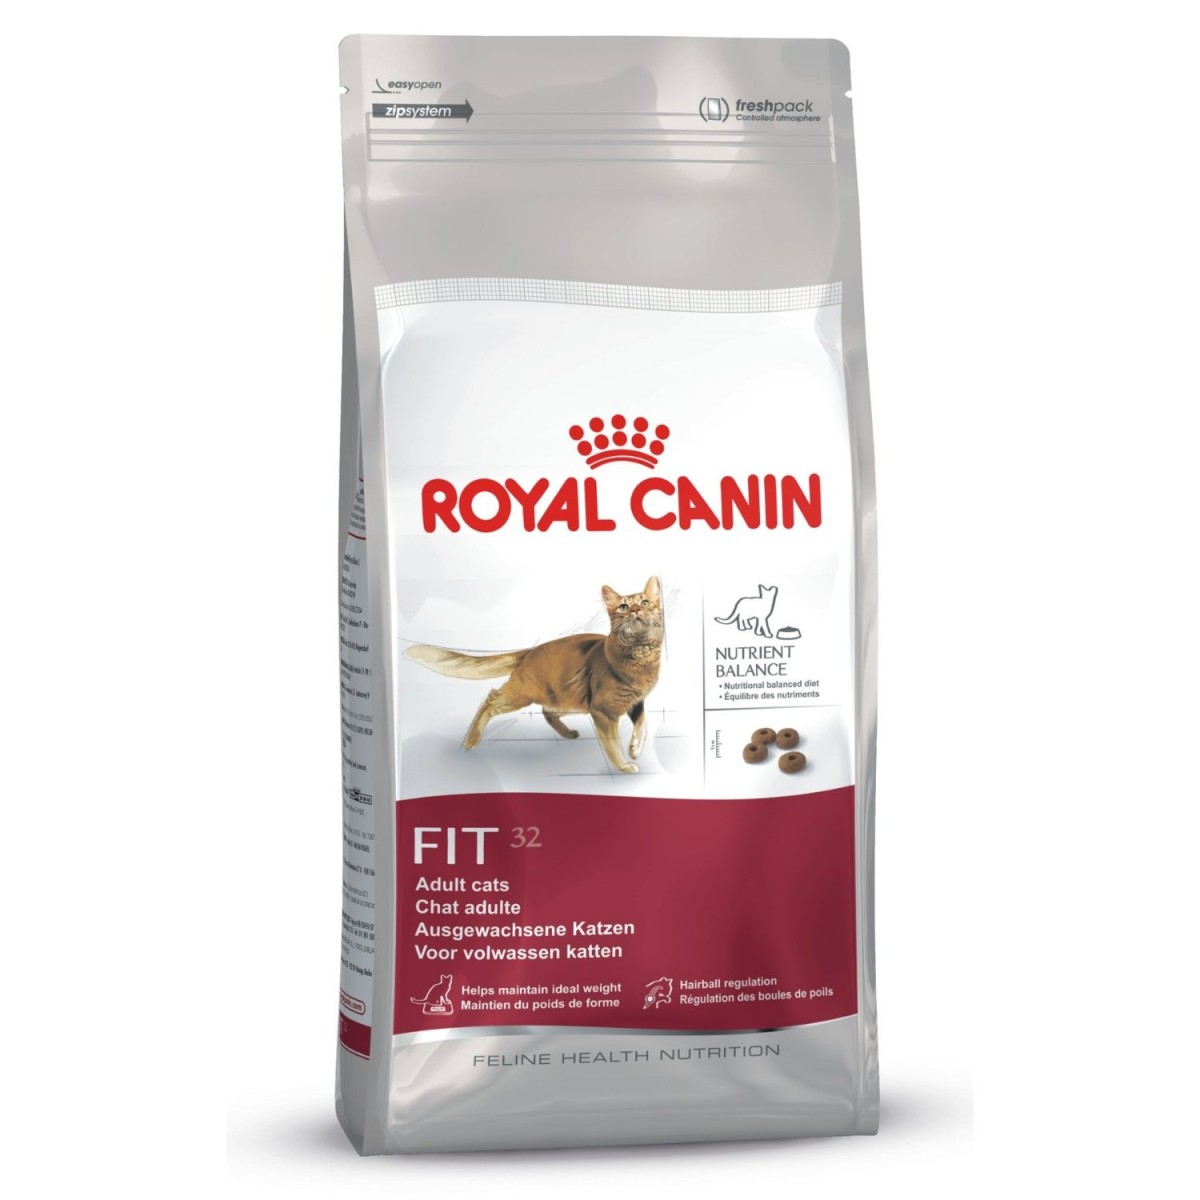 royal canin fit 32 2kg katzenfutter ruhige hauskatzen. Black Bedroom Furniture Sets. Home Design Ideas